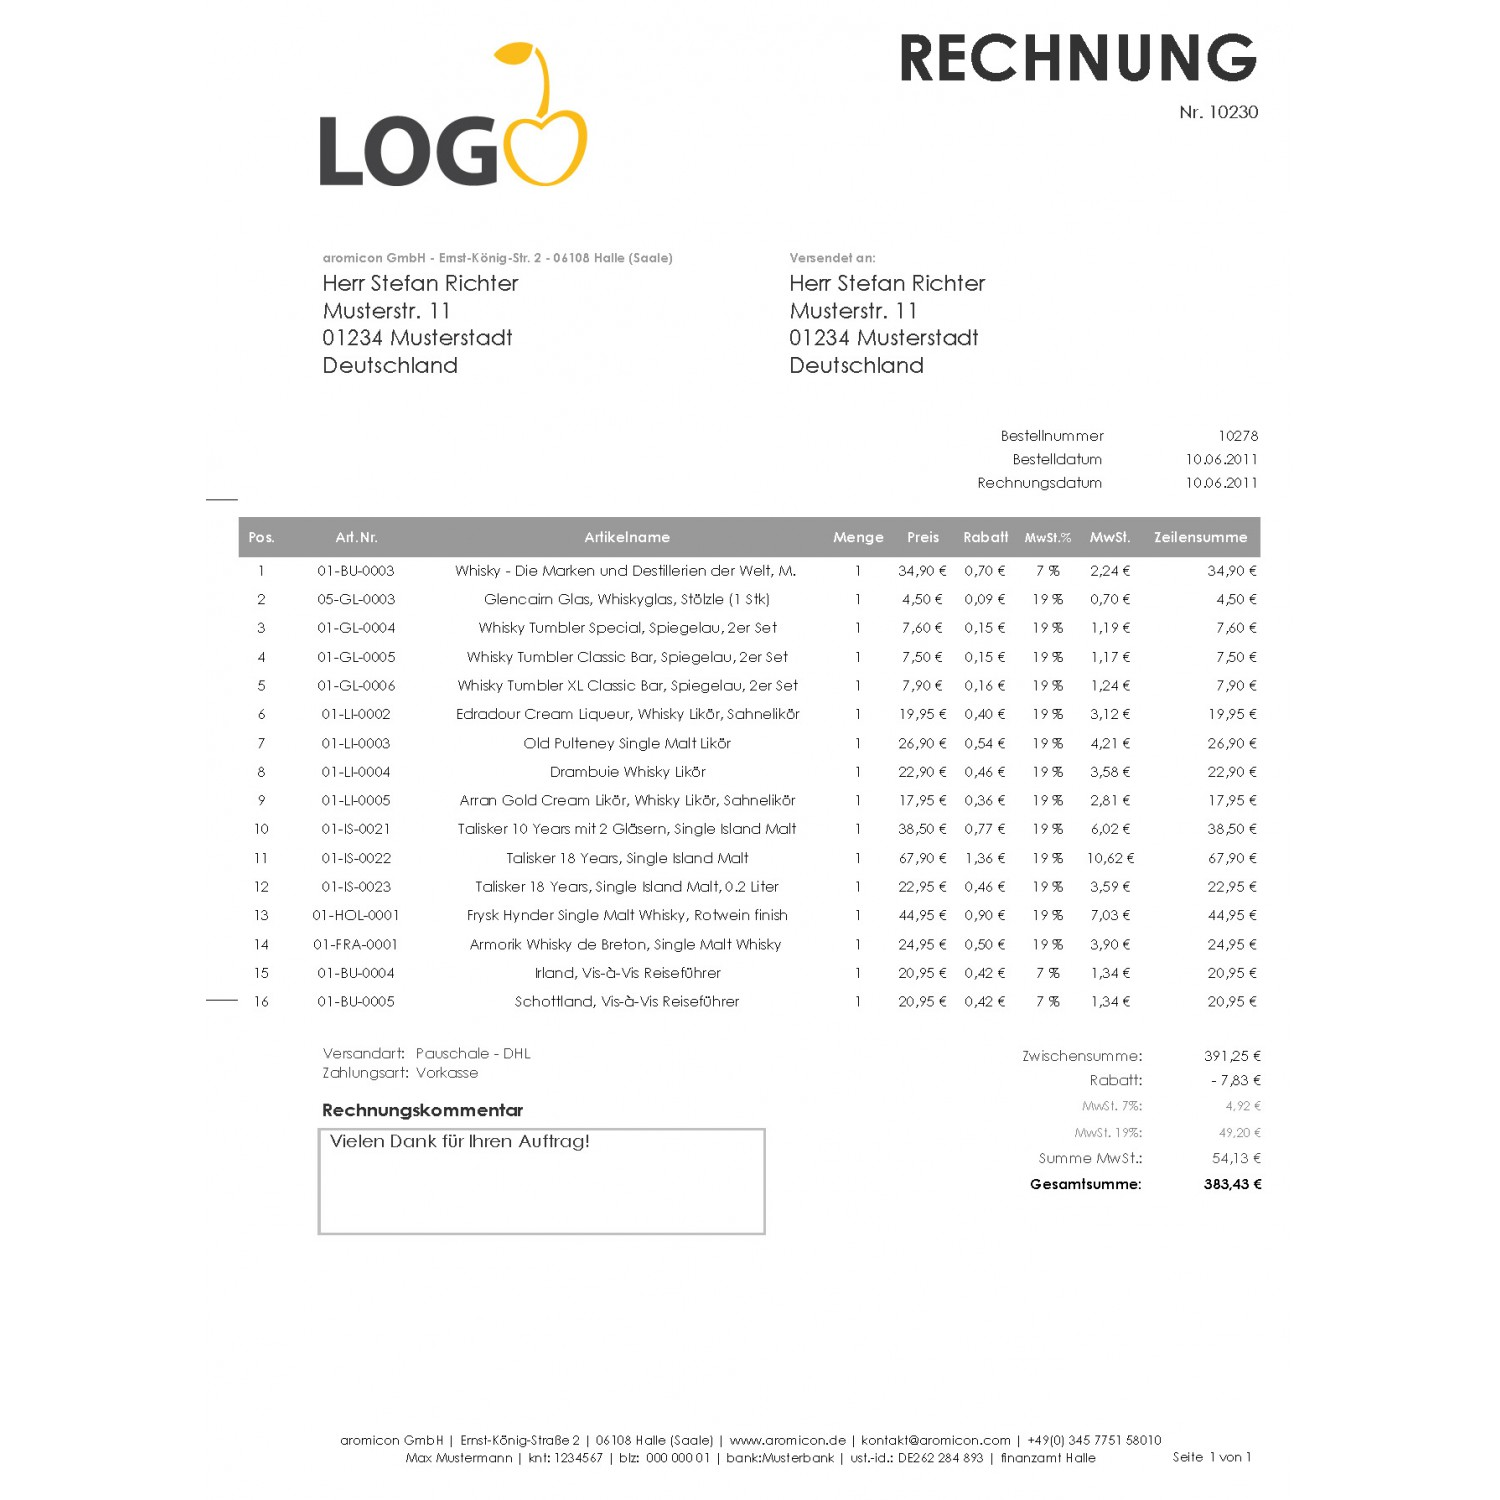 Invoice In Word Format Excel Download German Invoice Template Word  Rabitahnet Invoice Template For Contractors with How To Use Neat Receipts Invoice Pdf Pro  Windowinvoice Invoice Template German Simple Invoice Ebay Send An Invoice Pdf